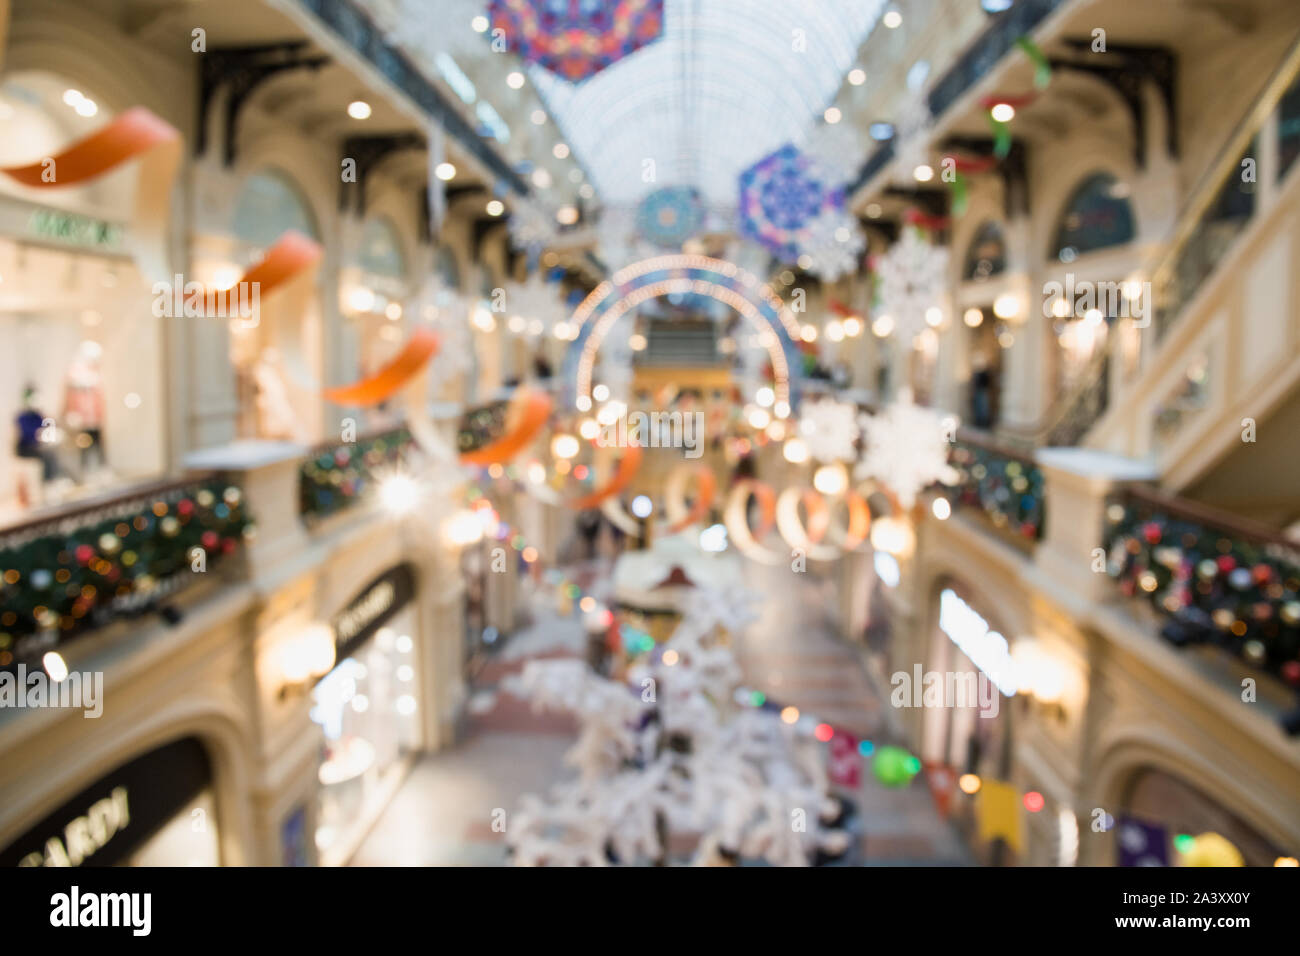 Blurred Background Of Hall In Shopping Center With Christmas